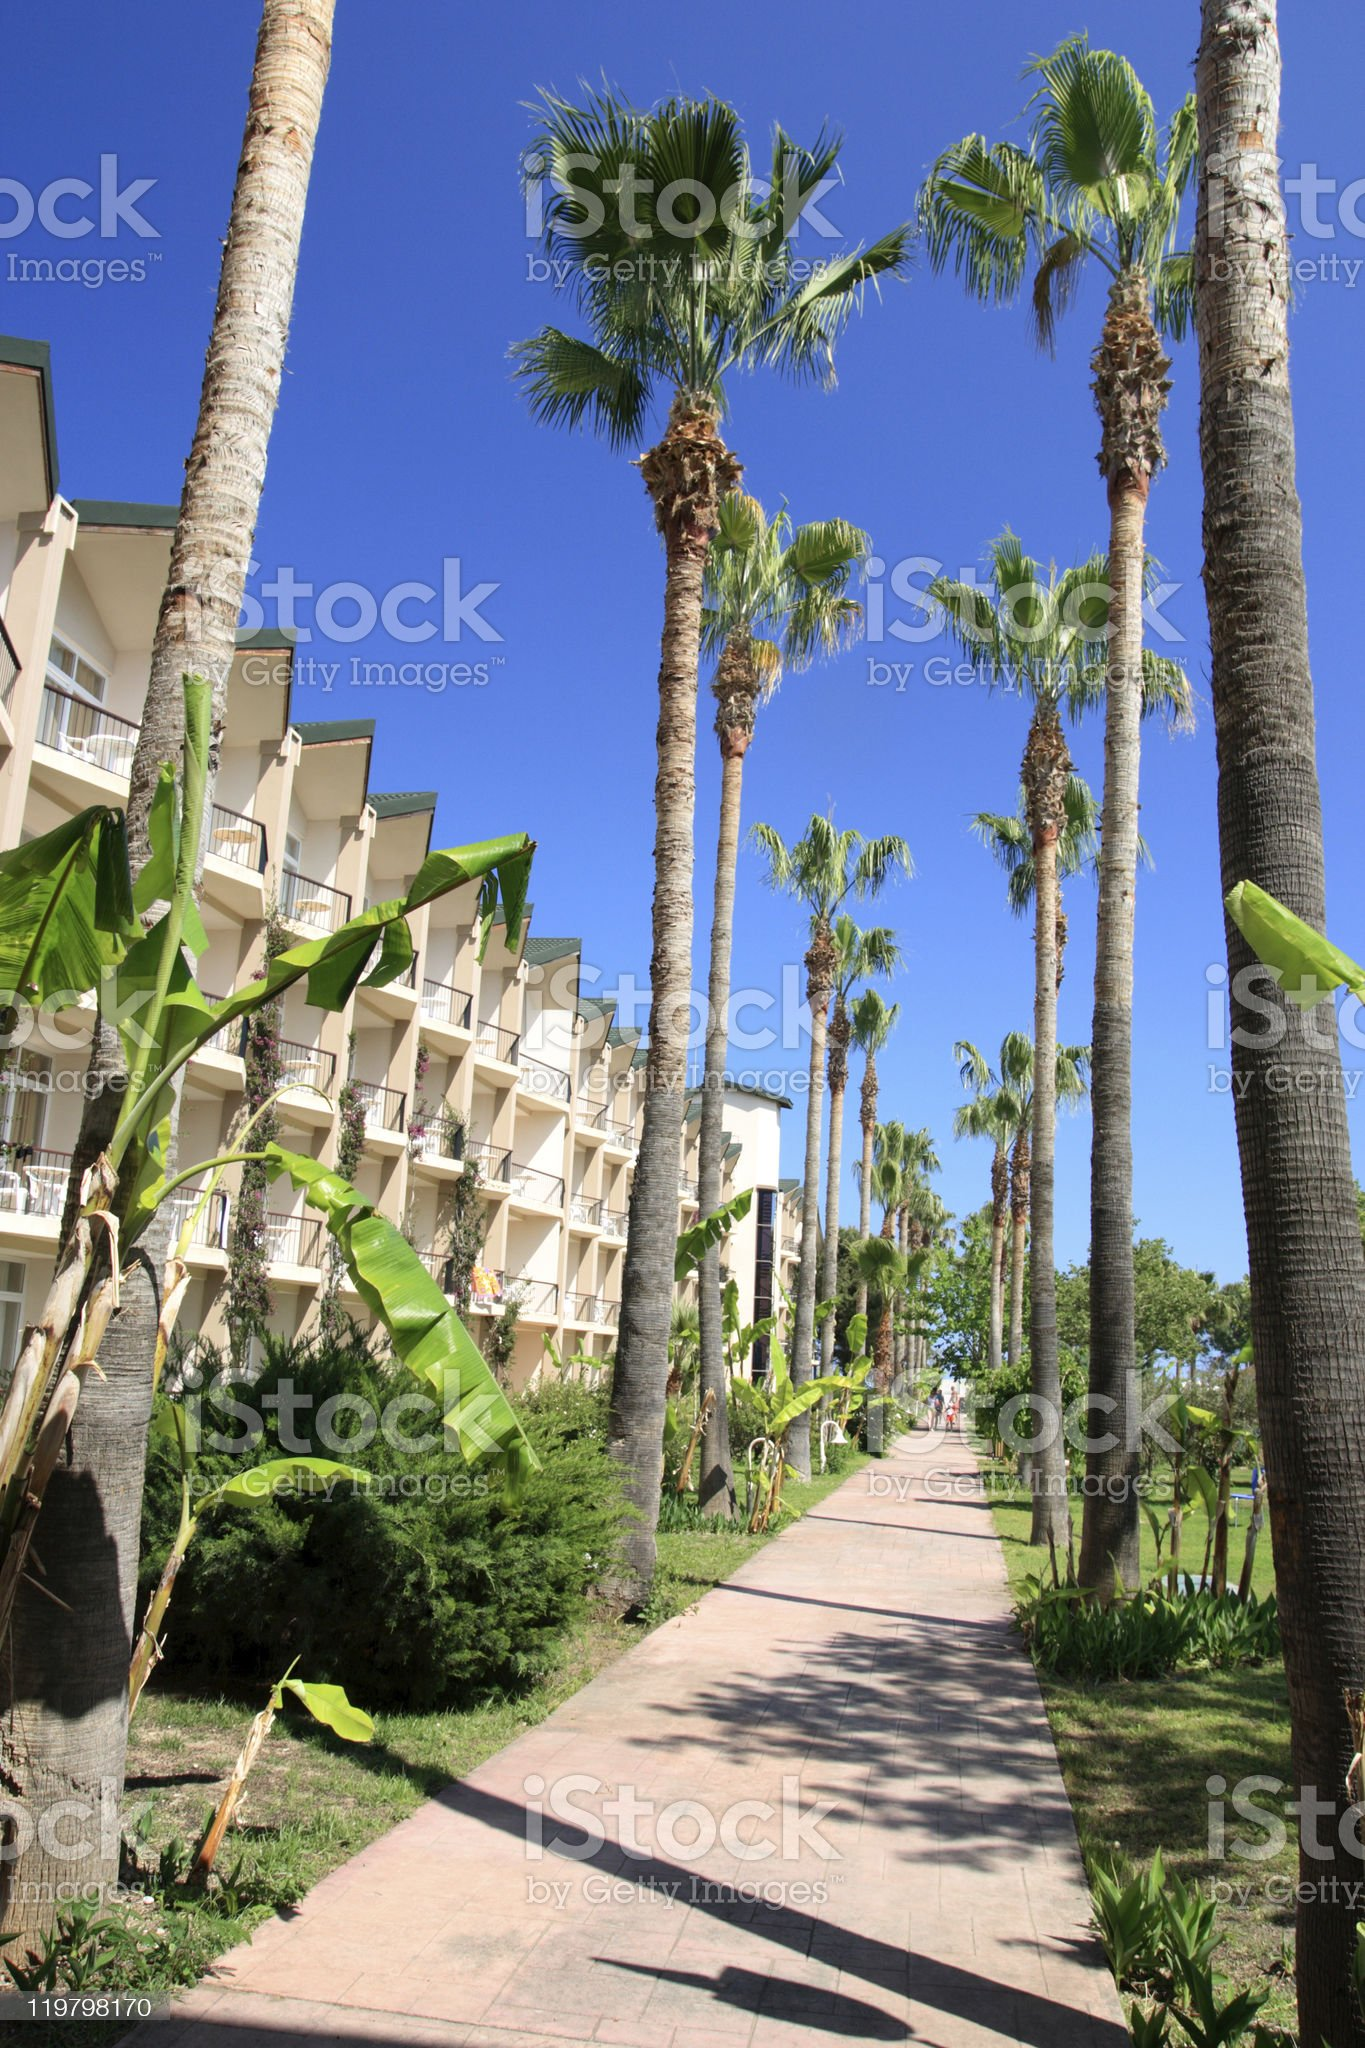 Street in a tropical town. royalty-free stock photo